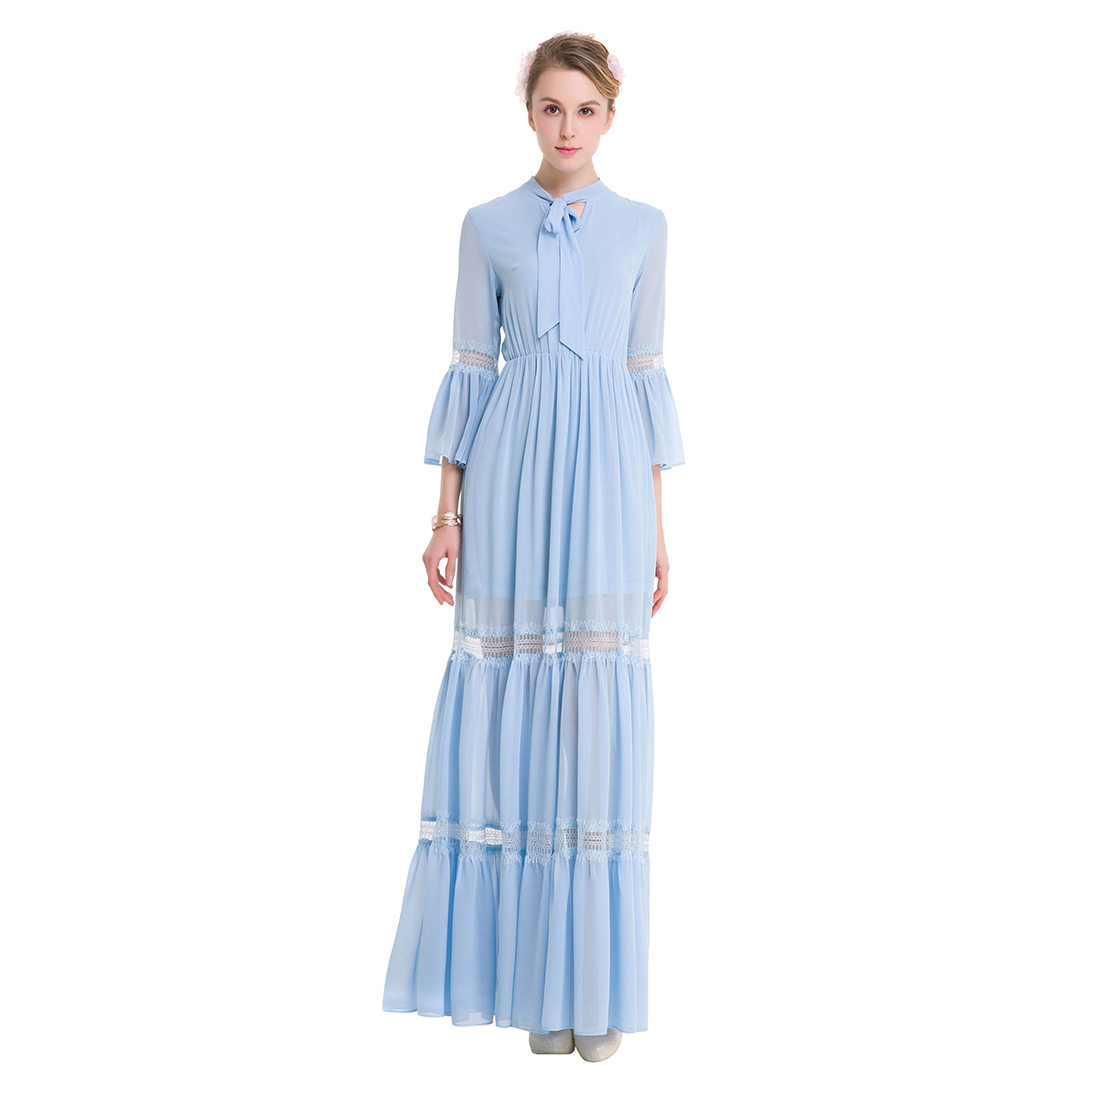 Original Design New Women Chiffon Long Dress Vintage Retro Bow Three Quarter Flare Sleeve Fairy Dresses Chiffon Boho Spring